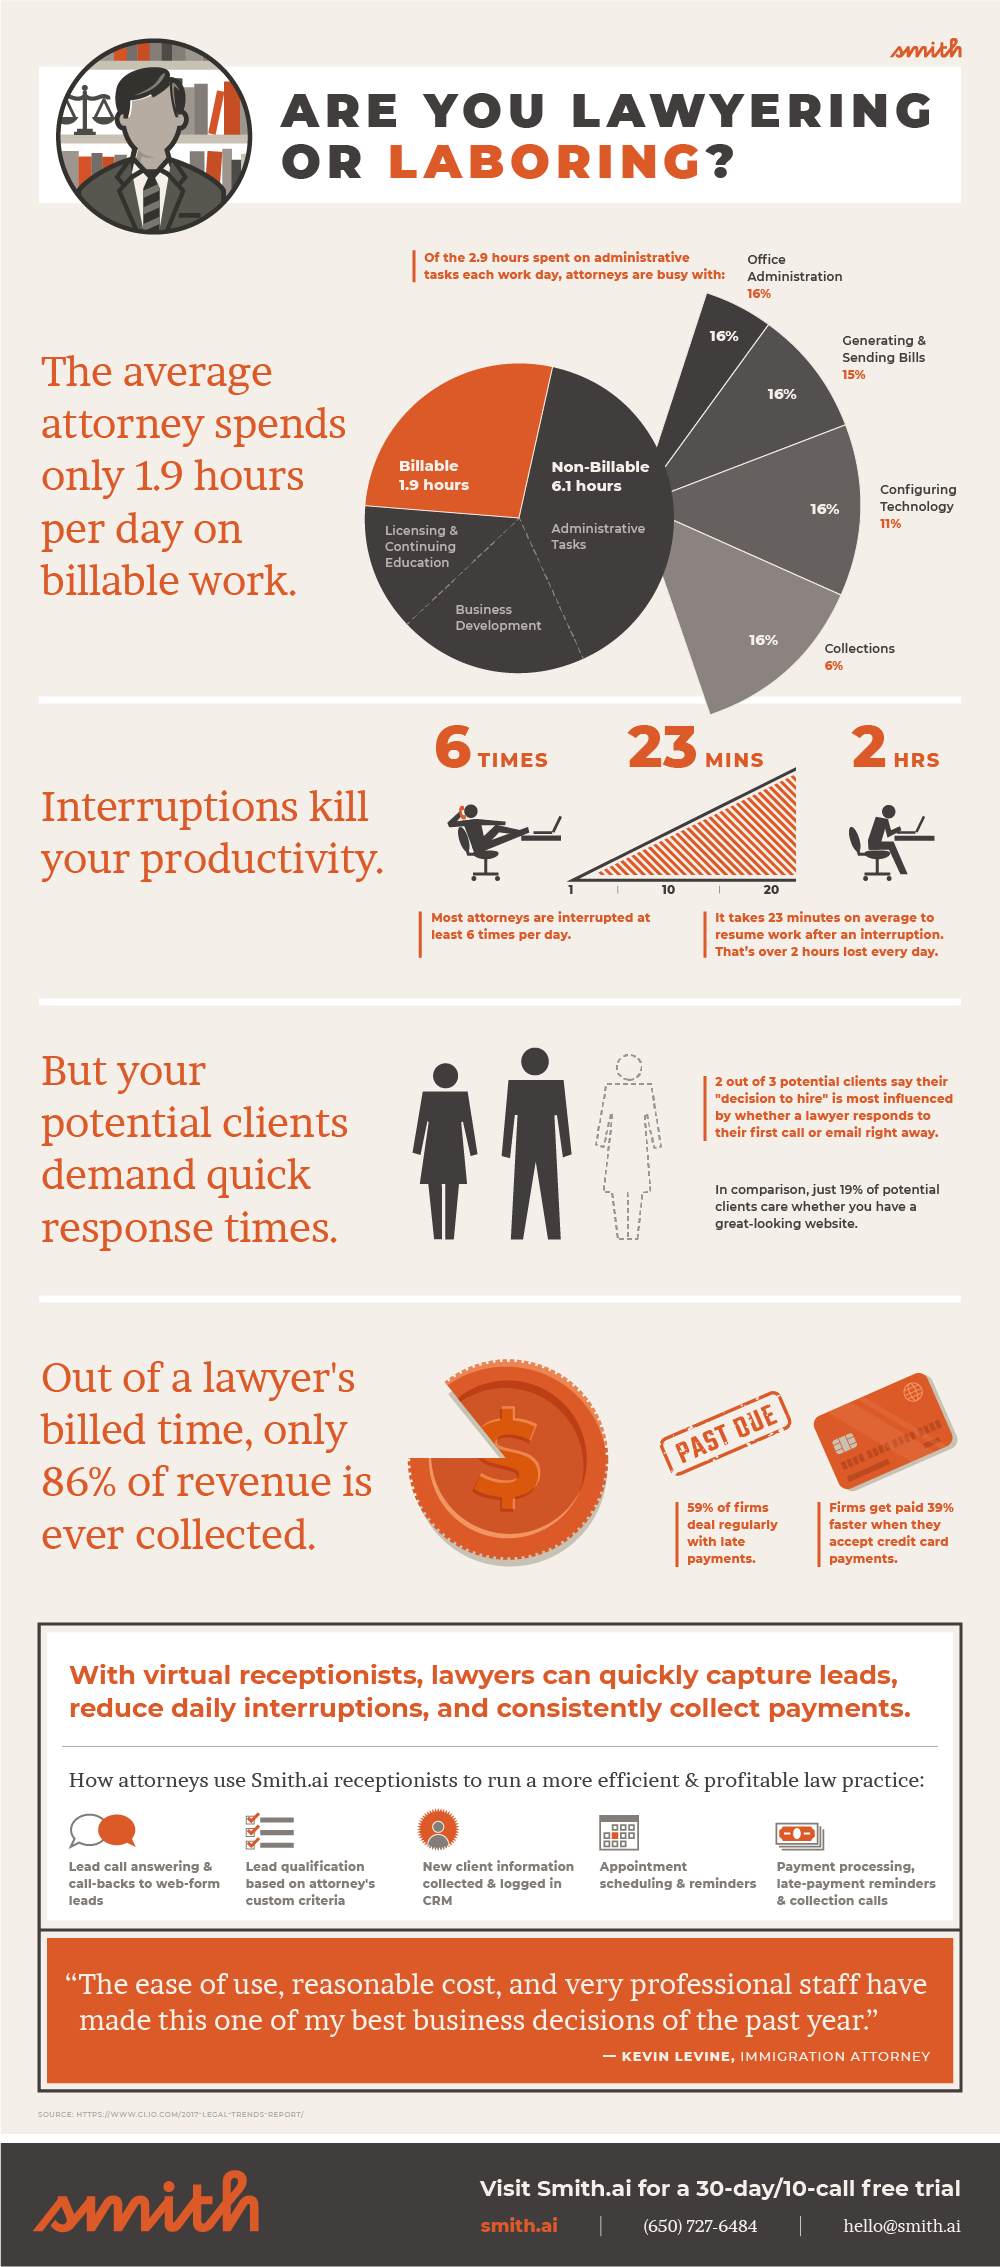 Smith-Clio-Infographic-Web-FINAL